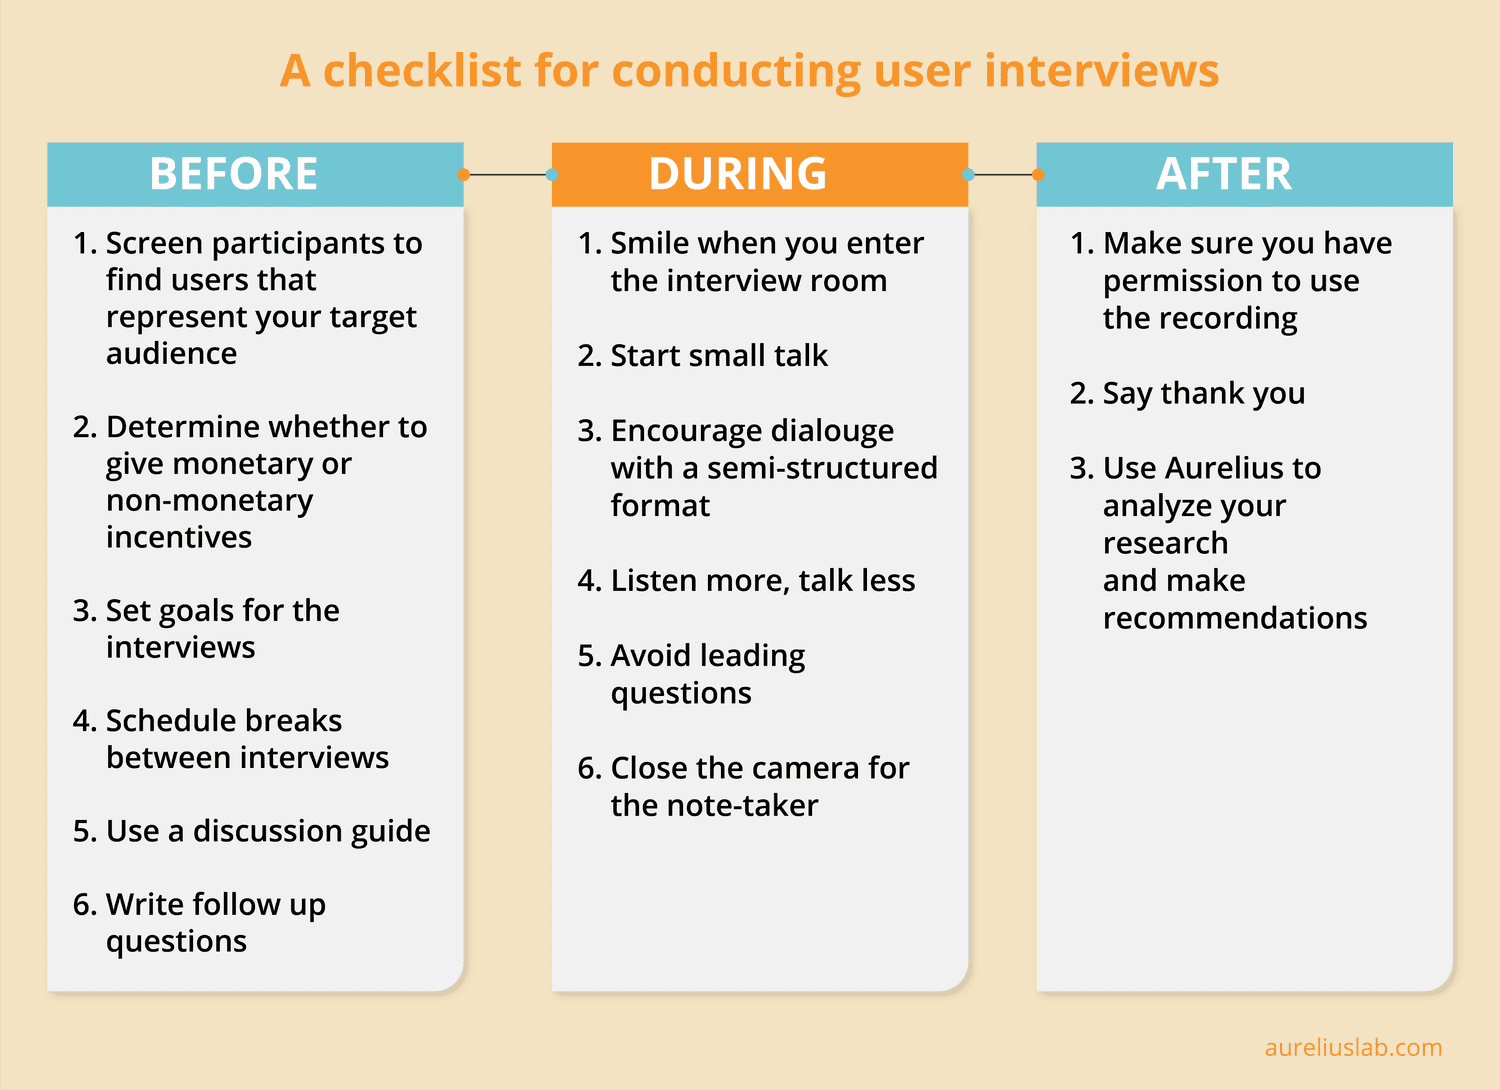 A checklist for conducting user interviews